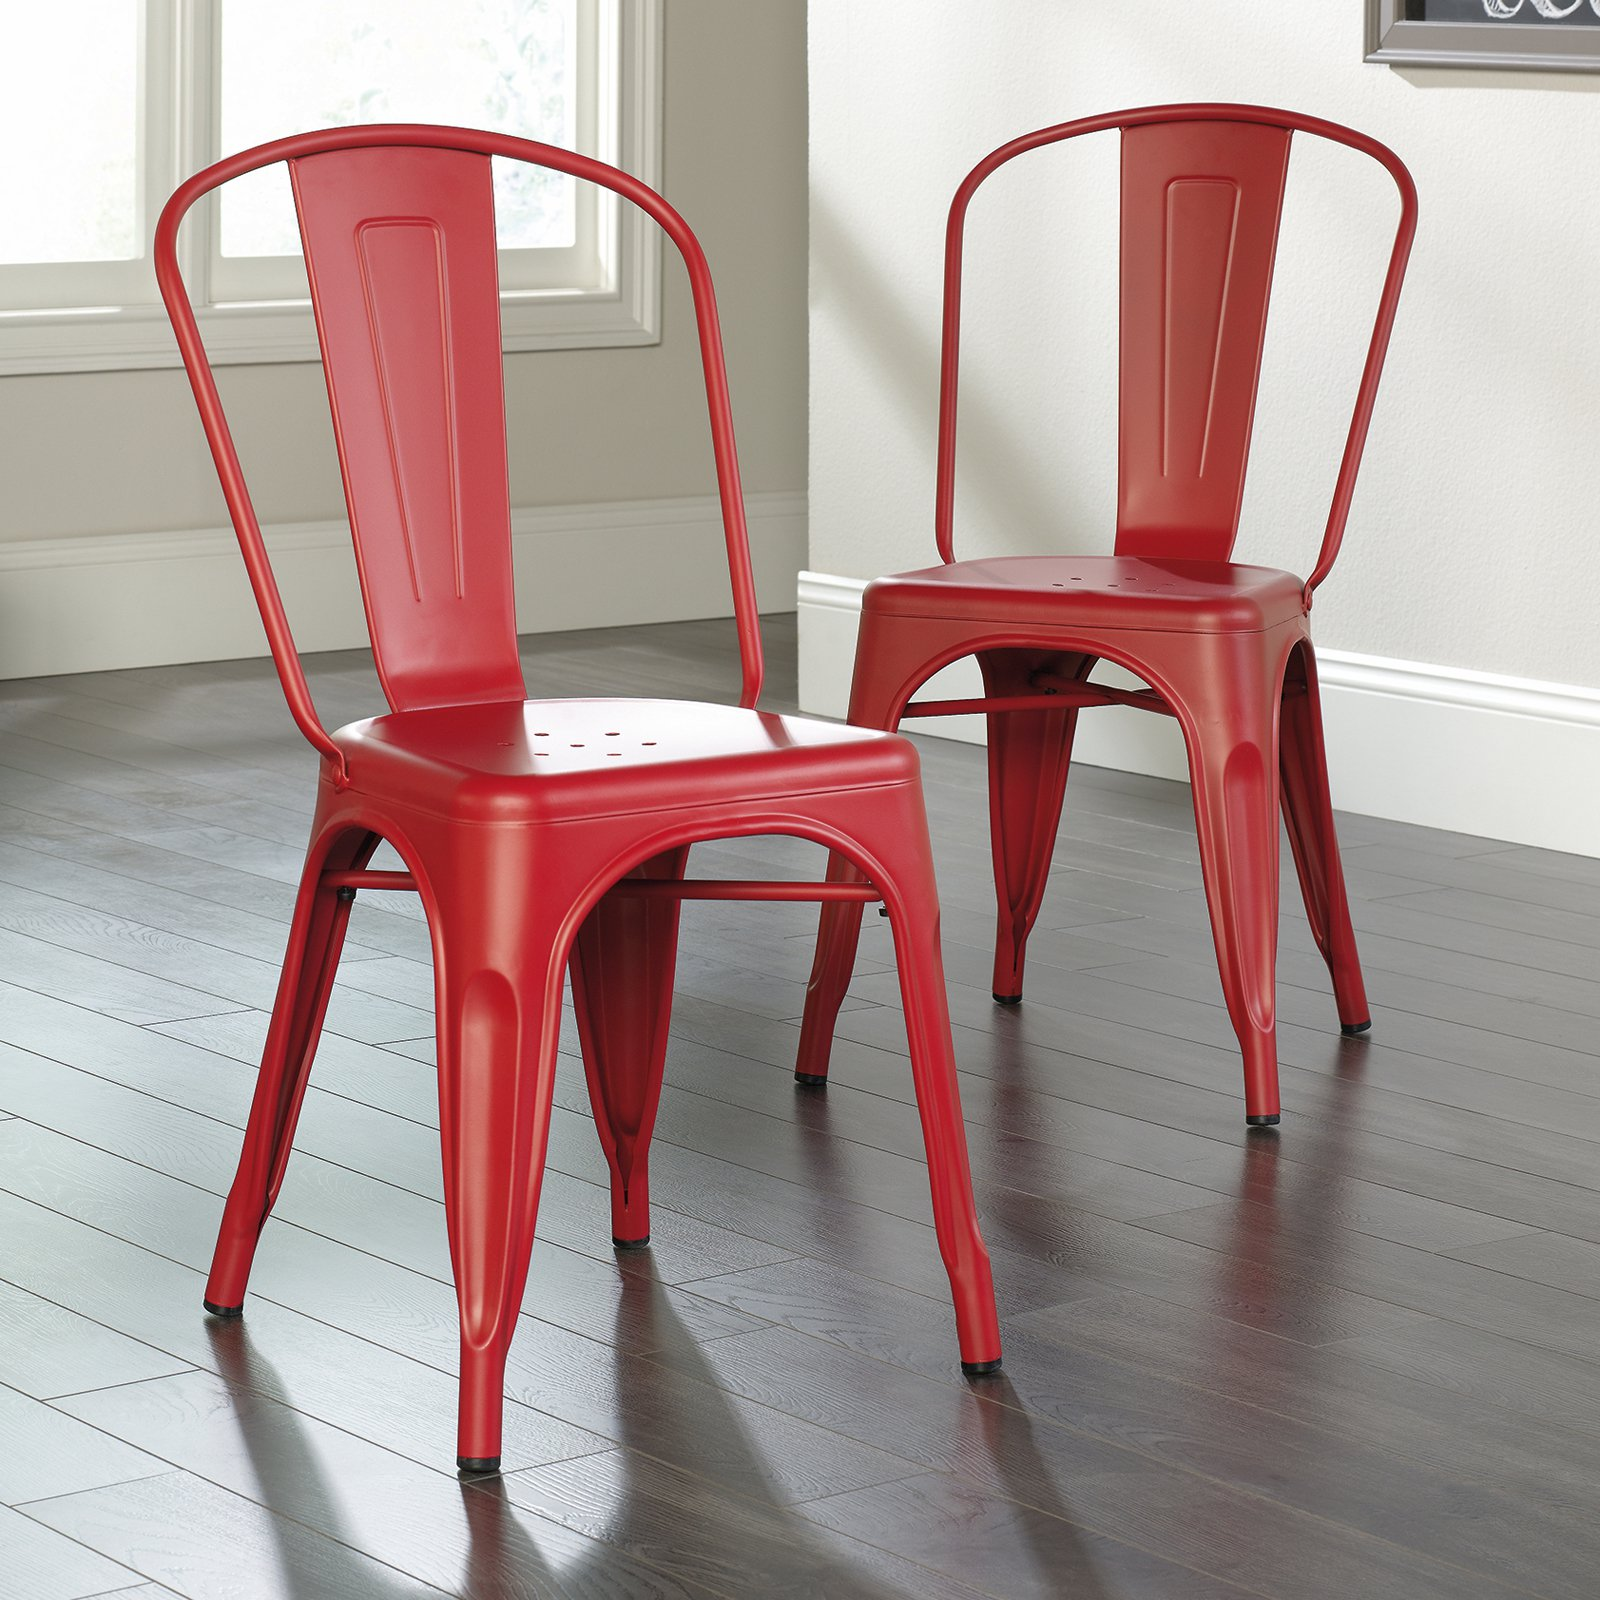 Sauder New Grange Metal Dining Chairs, 2-Pack, Red Finish